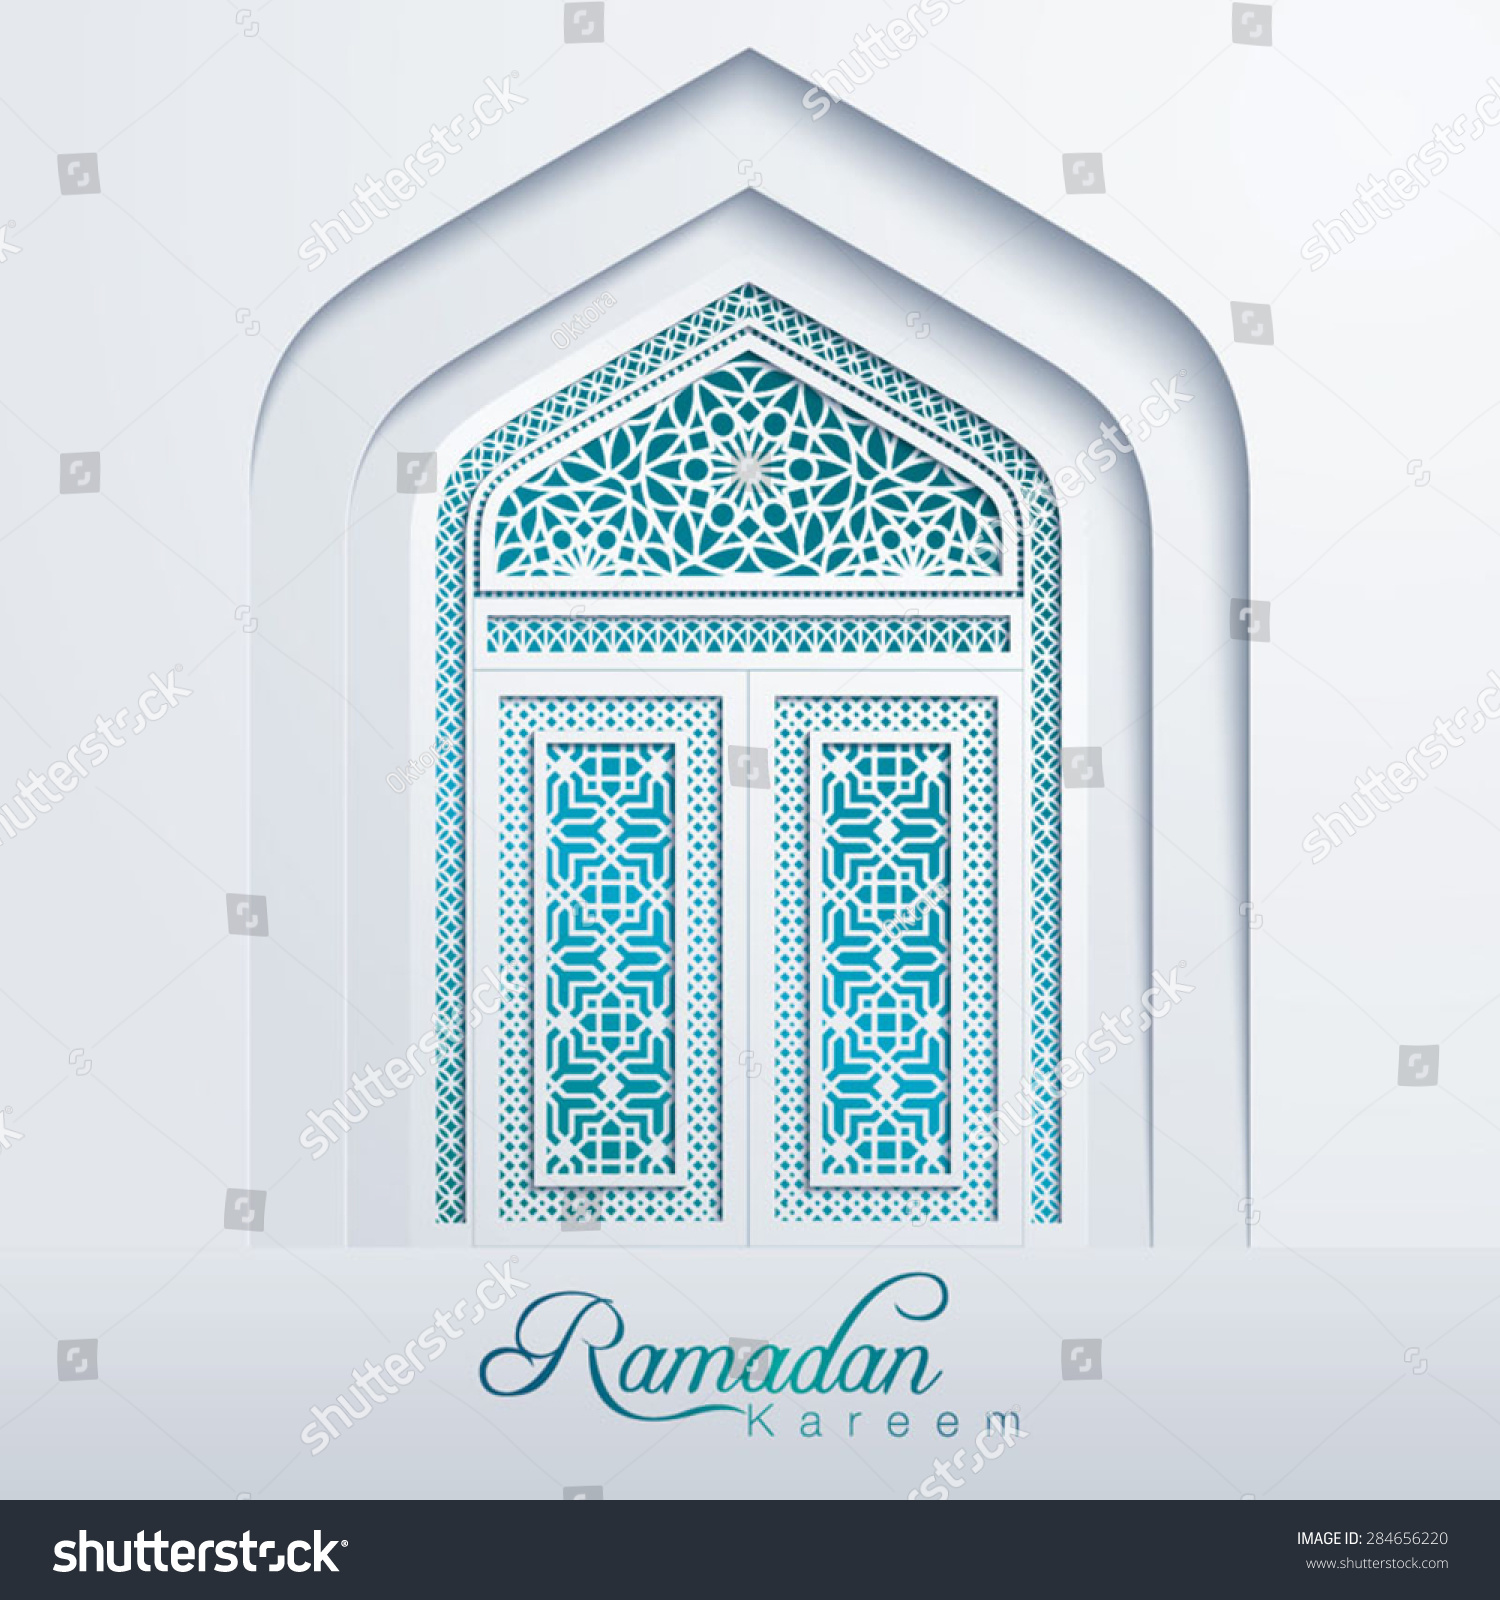 Ramadan Kareem White Mosque Door Geometric Pattern #284656220